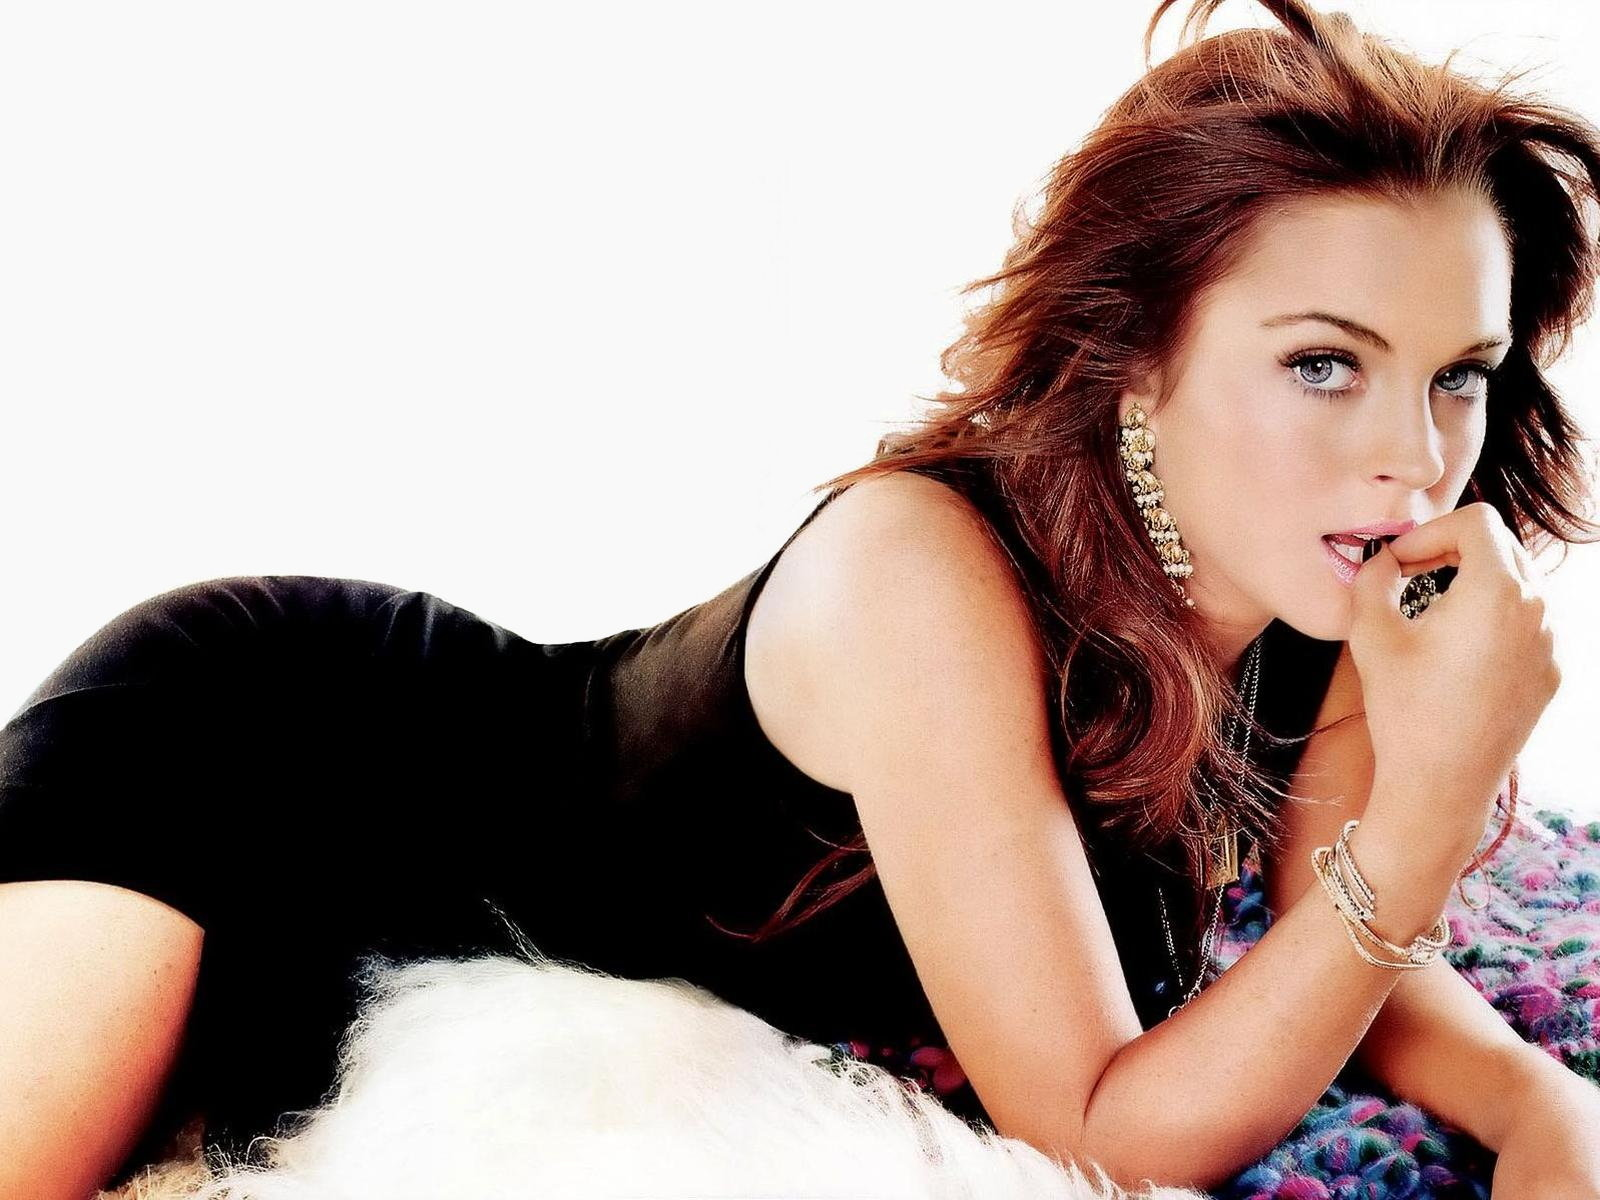 Iphone Celebrity Wallpapers  Lindsay Lohan iPhone wallpapers